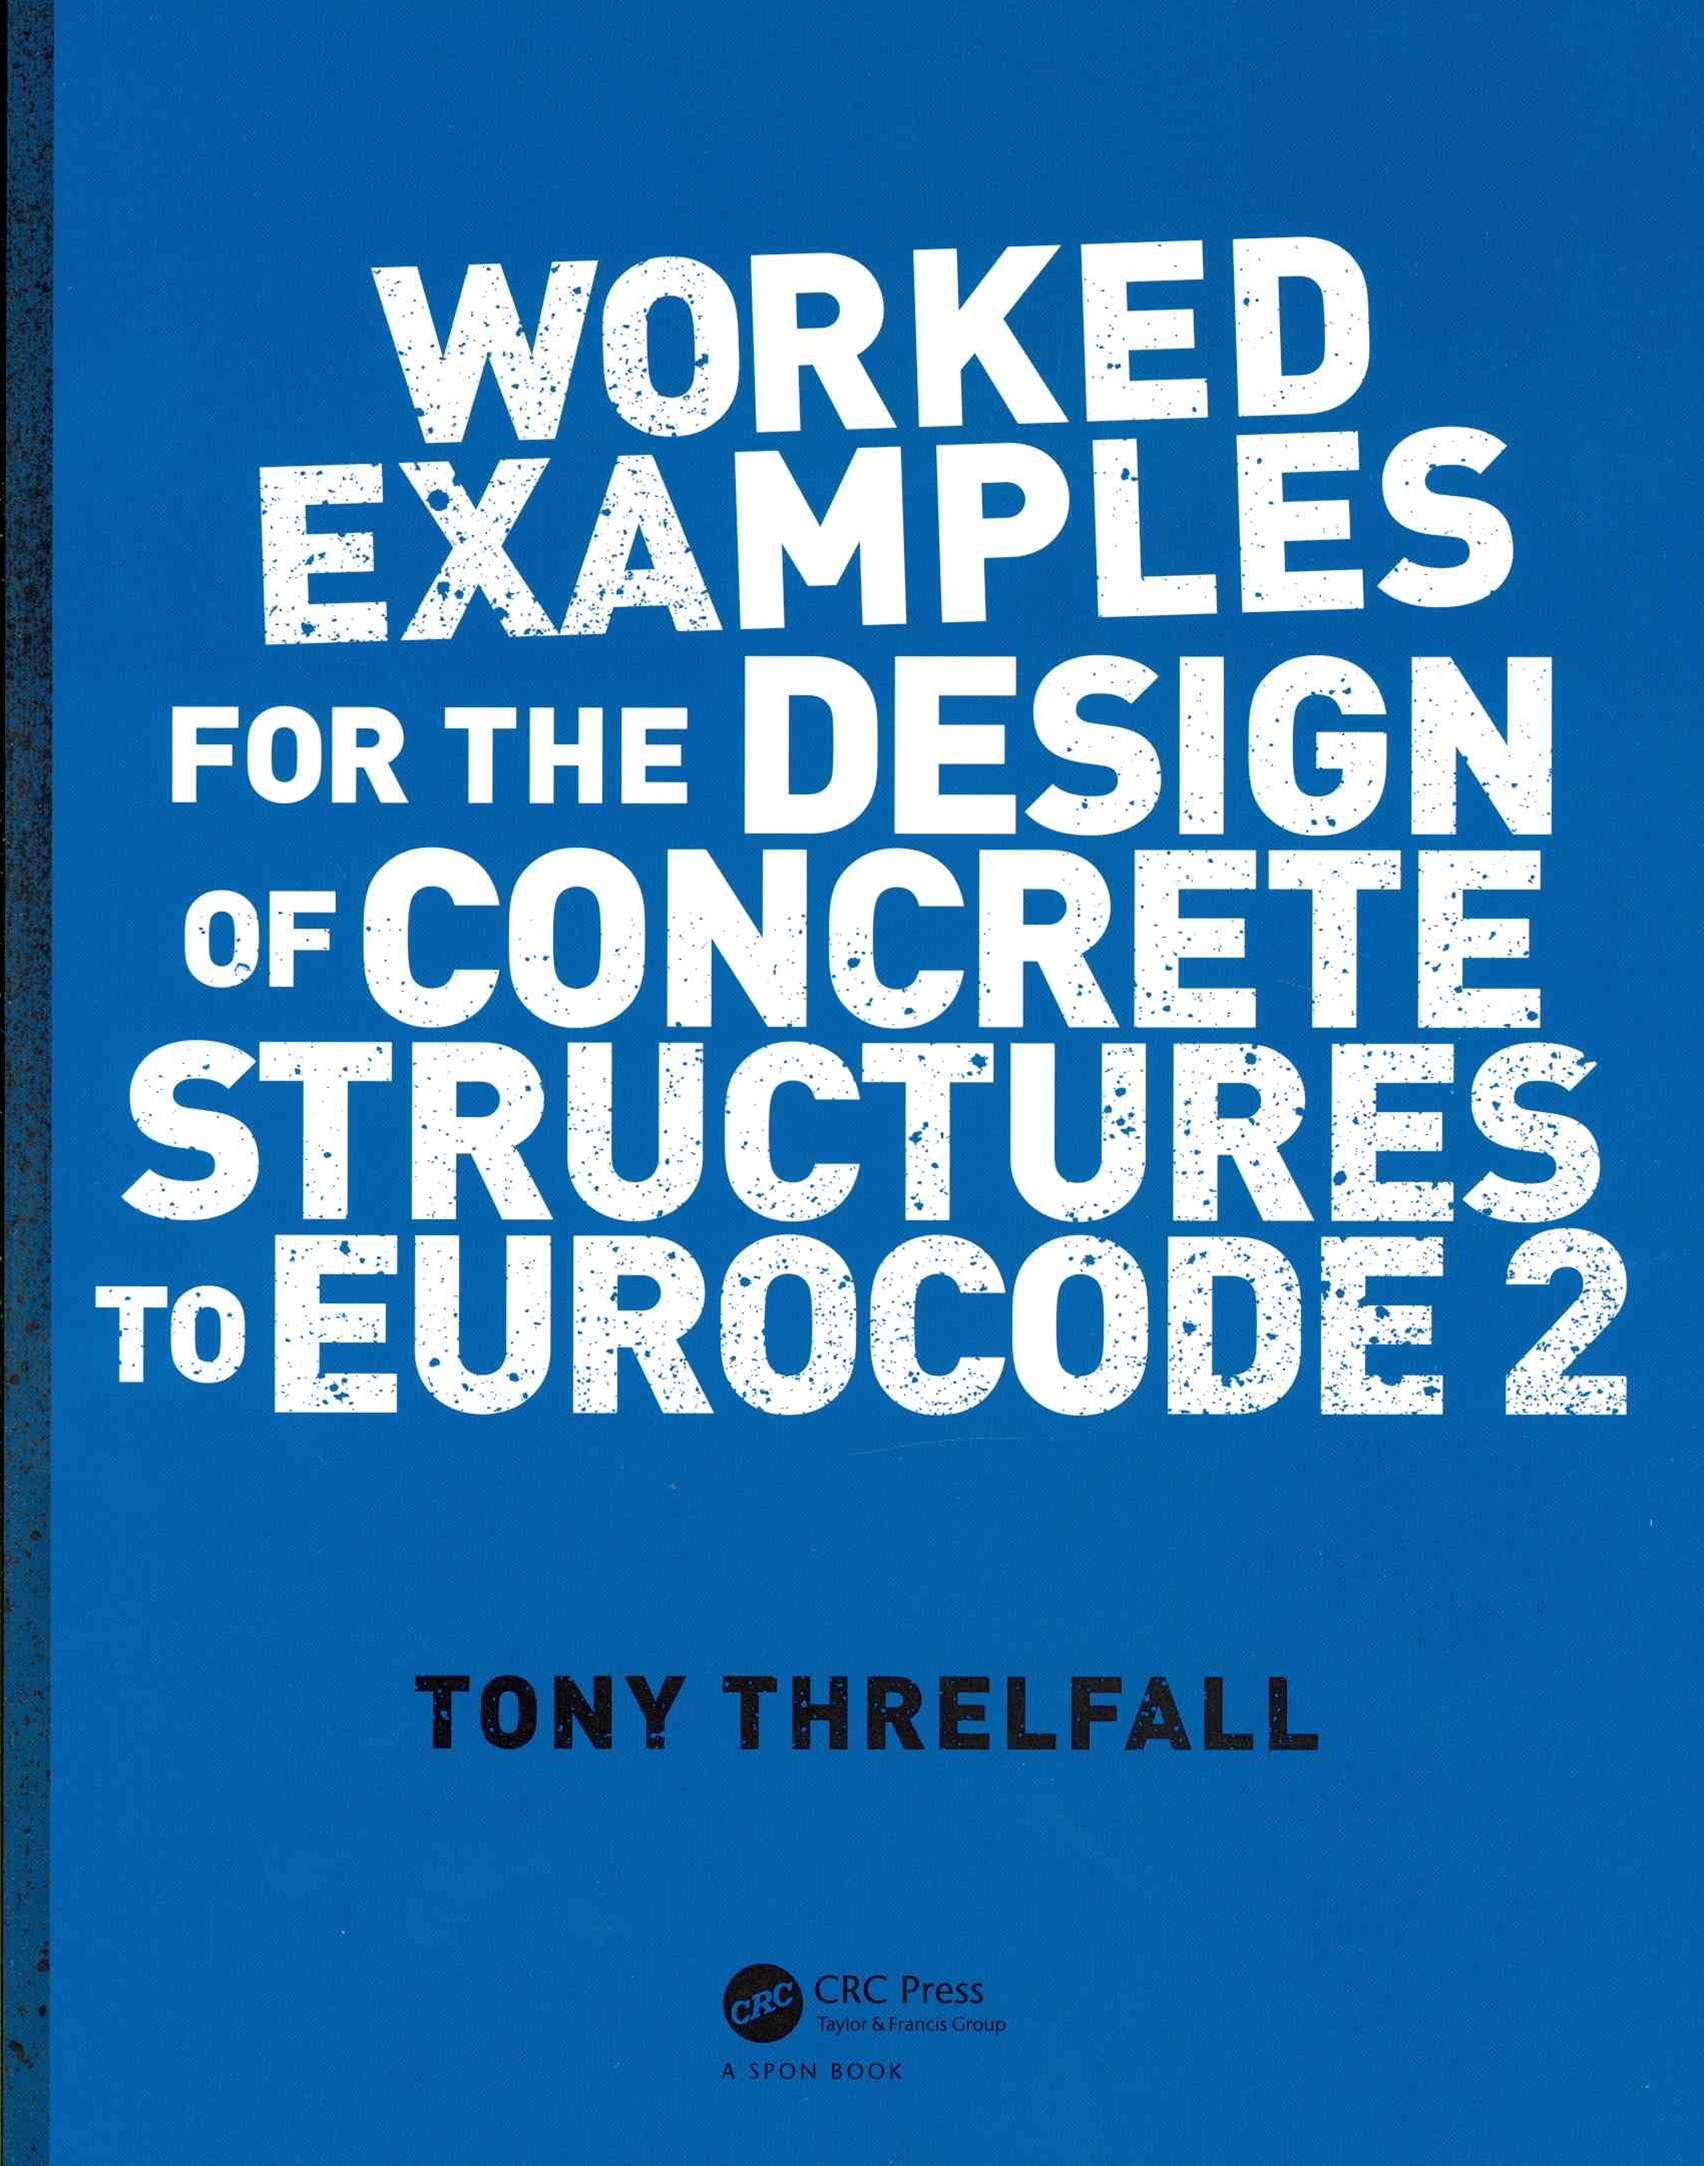 Worked Examples for the Design of Concrete Structures to Eurocode